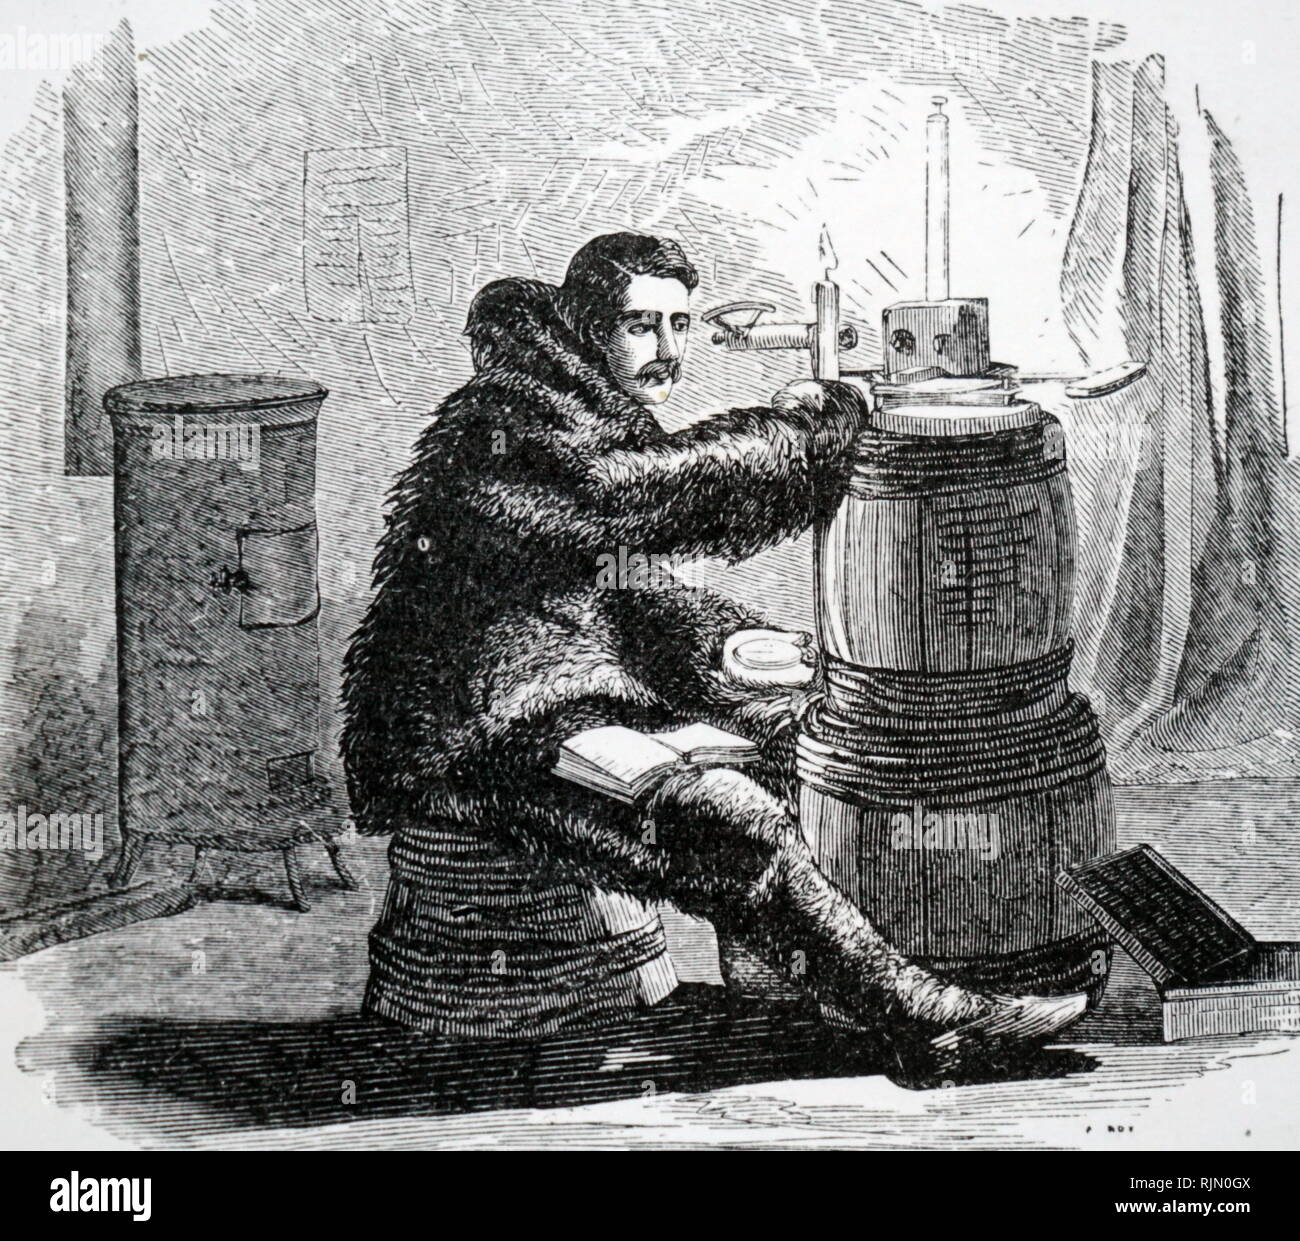 Illustration showing work in a magnetic observatory. From Elisha Kent Kane 'Arctic Explorations', The Second Grinnfell Expedition in Search of Sir John Franklin, 1853 - 1855. - Stock Image